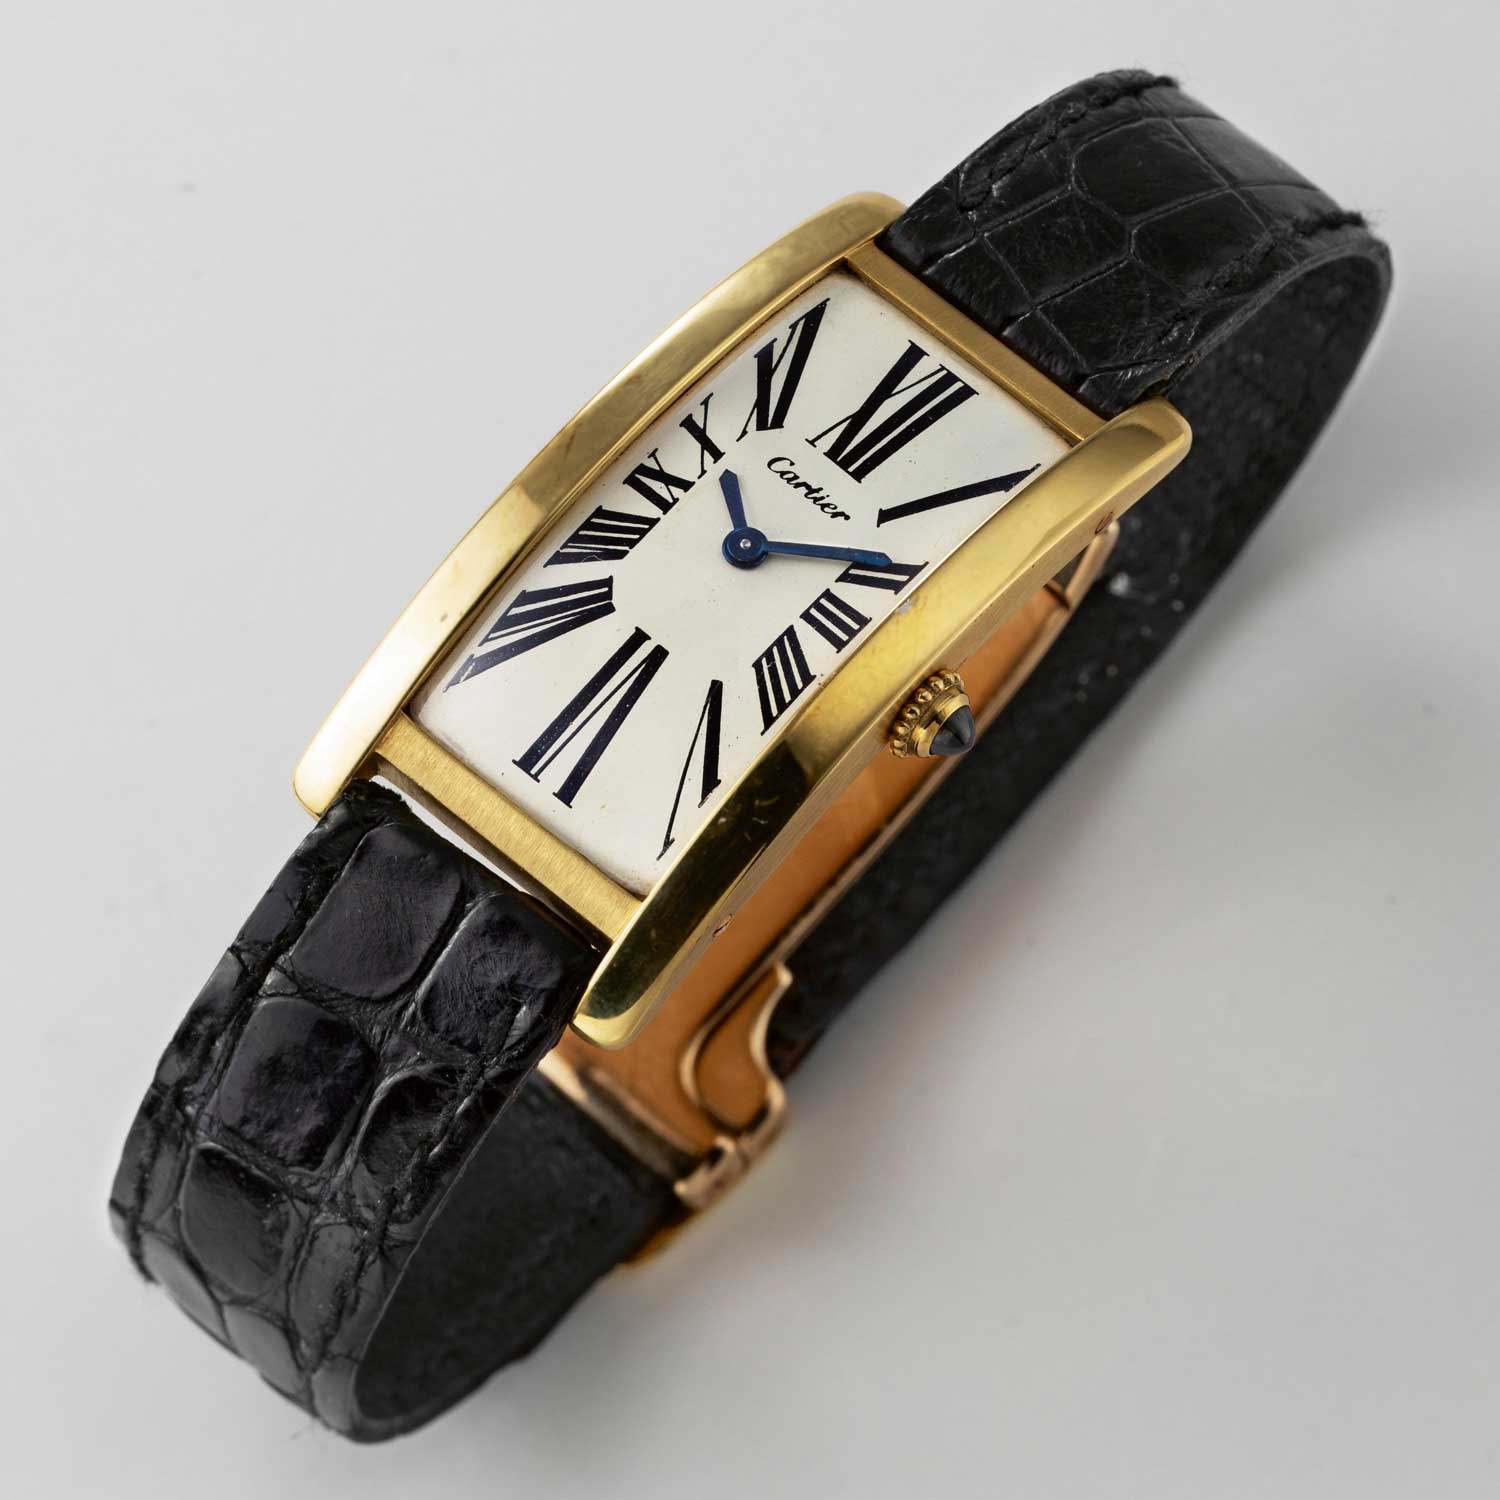 Cartier Tank Cintrée made in London ... (Image © Revolution)